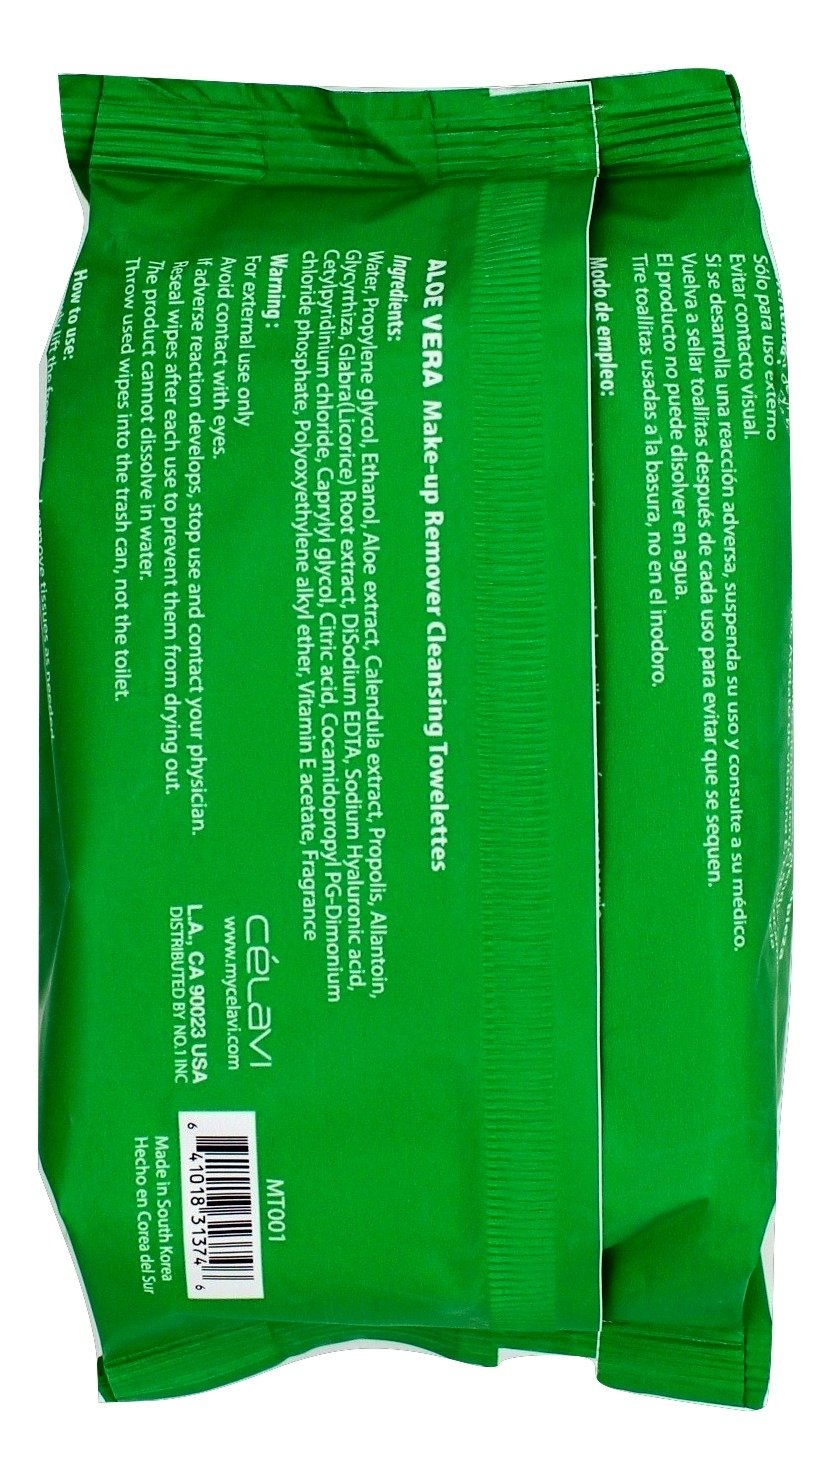 Amazon.com: Celavi Makeup Remover Cleansing Wipes Removing Towelettes 2 Packs - 60 Sheets (Aloe Vera): Beauty